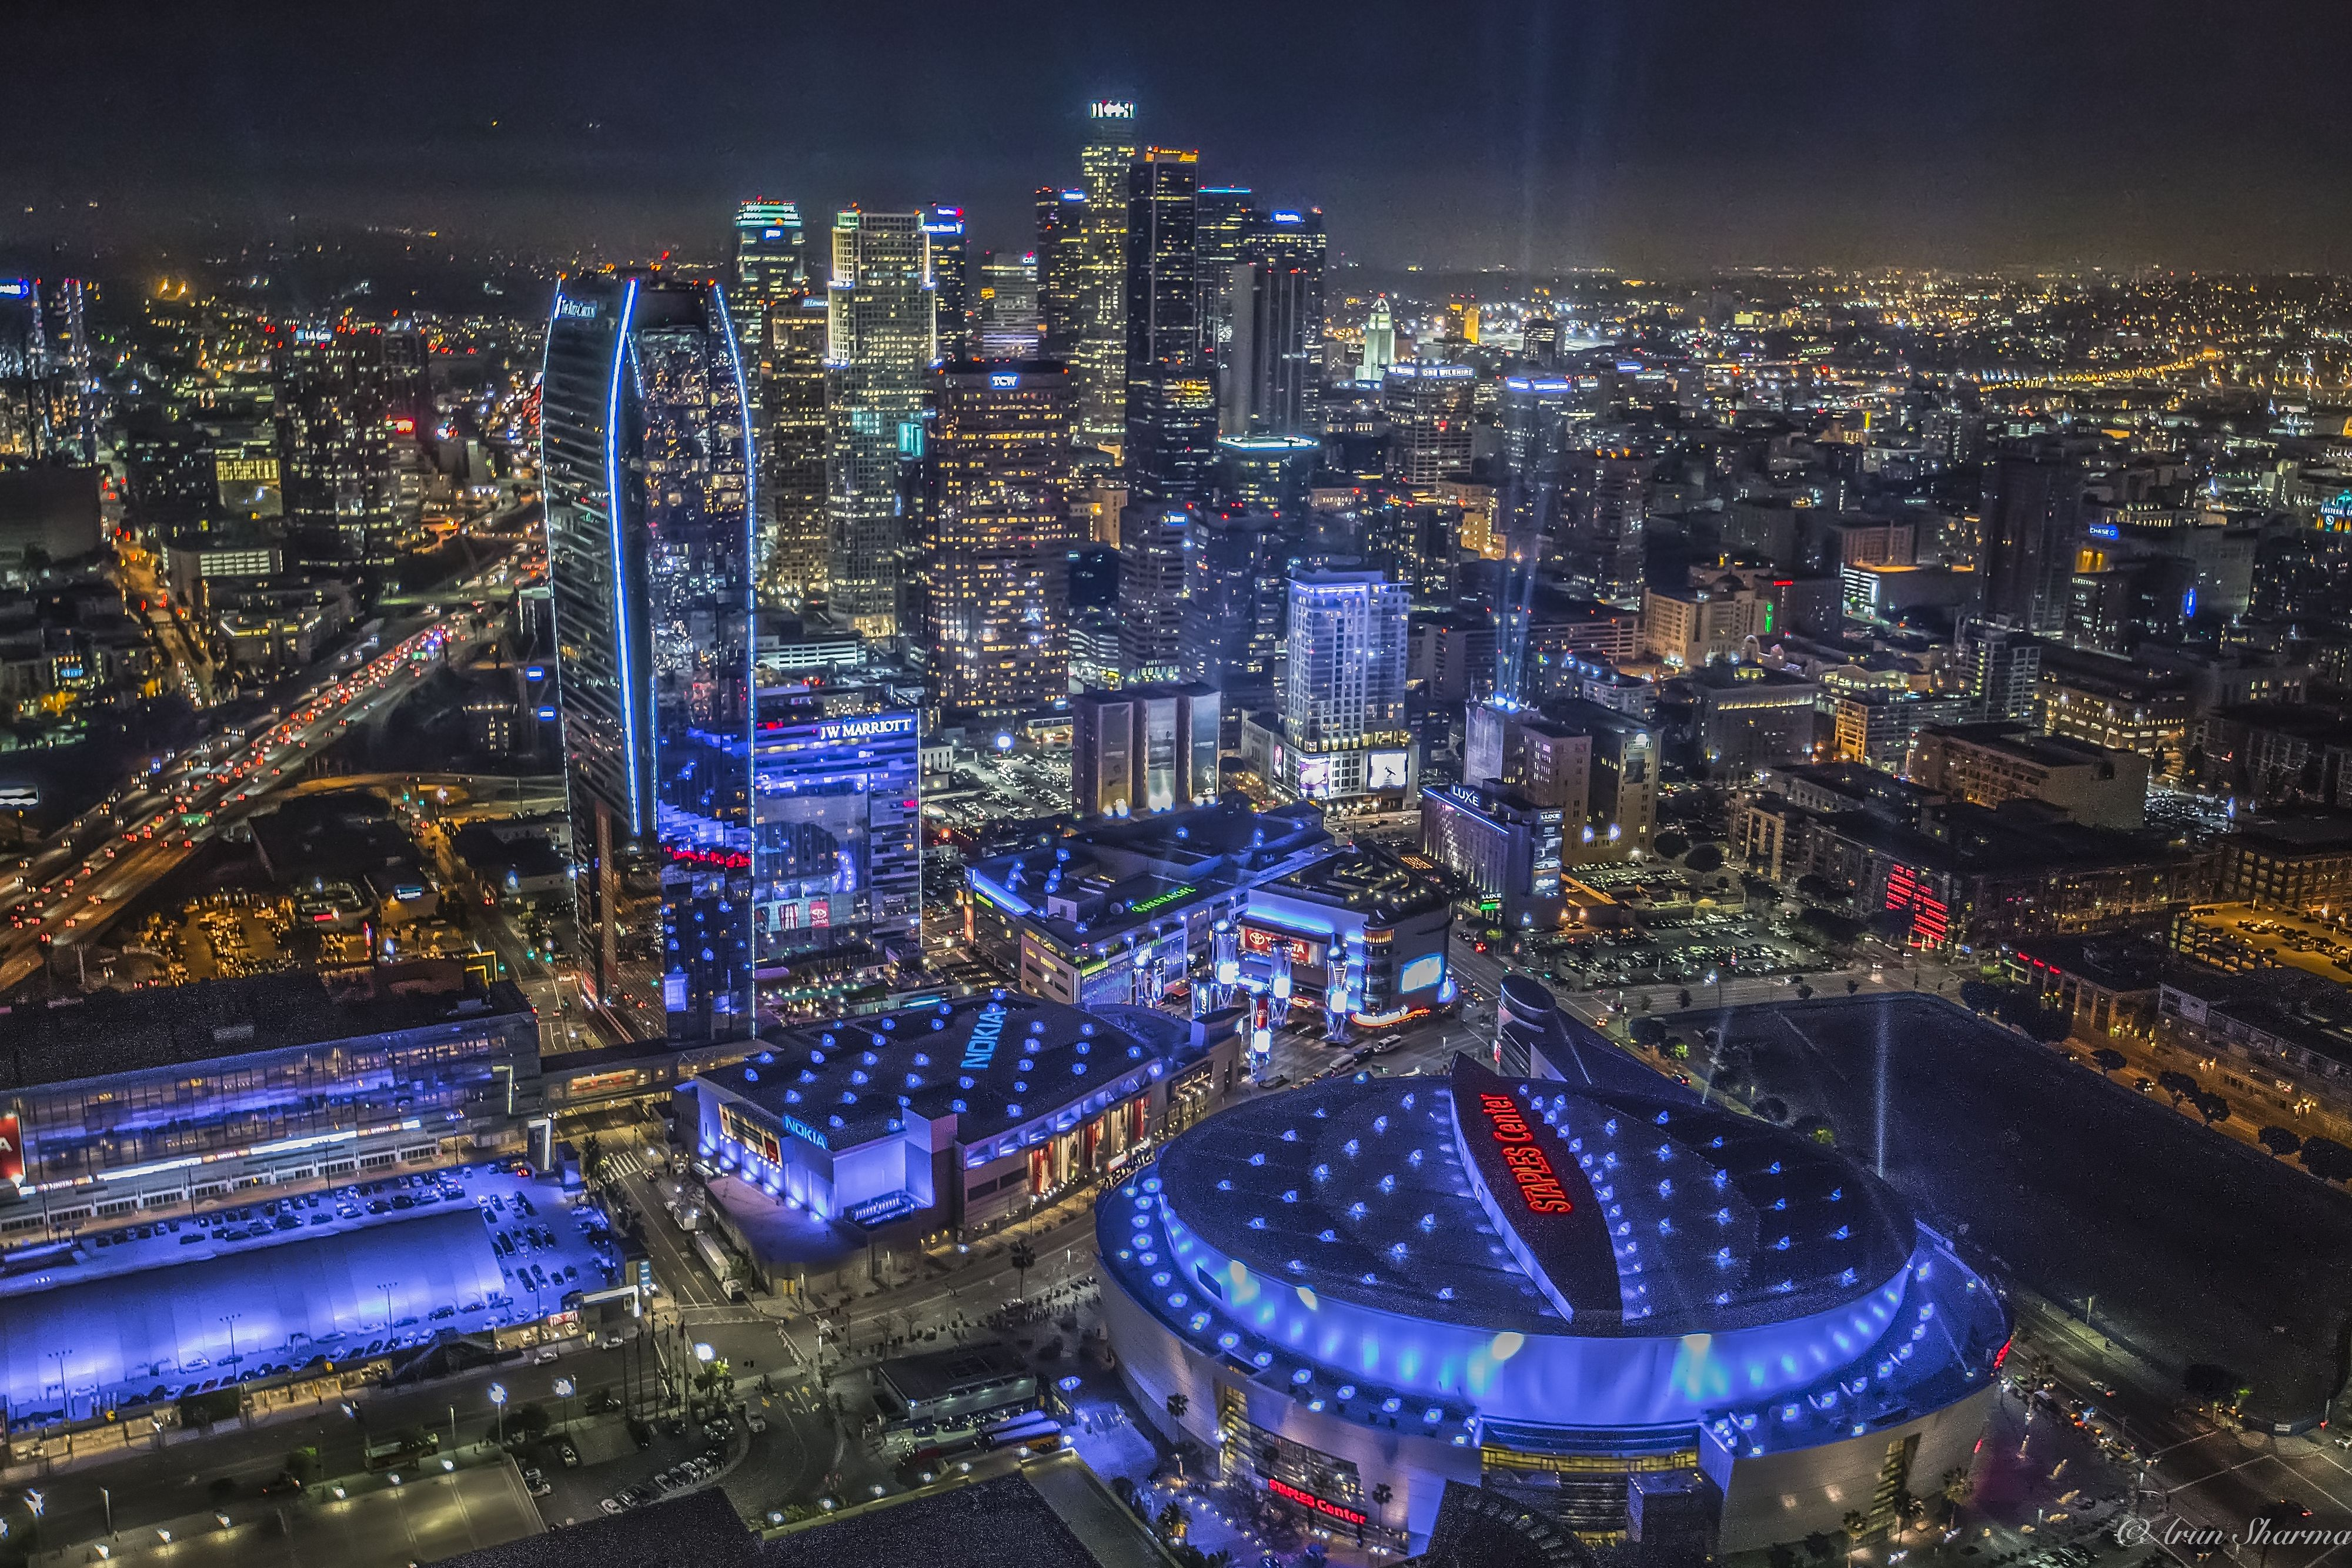 Los Angeles Helicopter Tour Packages Hollywood Tours Malibu Coastal Flights Downtown More 1 877 Los Angeles Travel Los Angeles Attractions Los Angeles